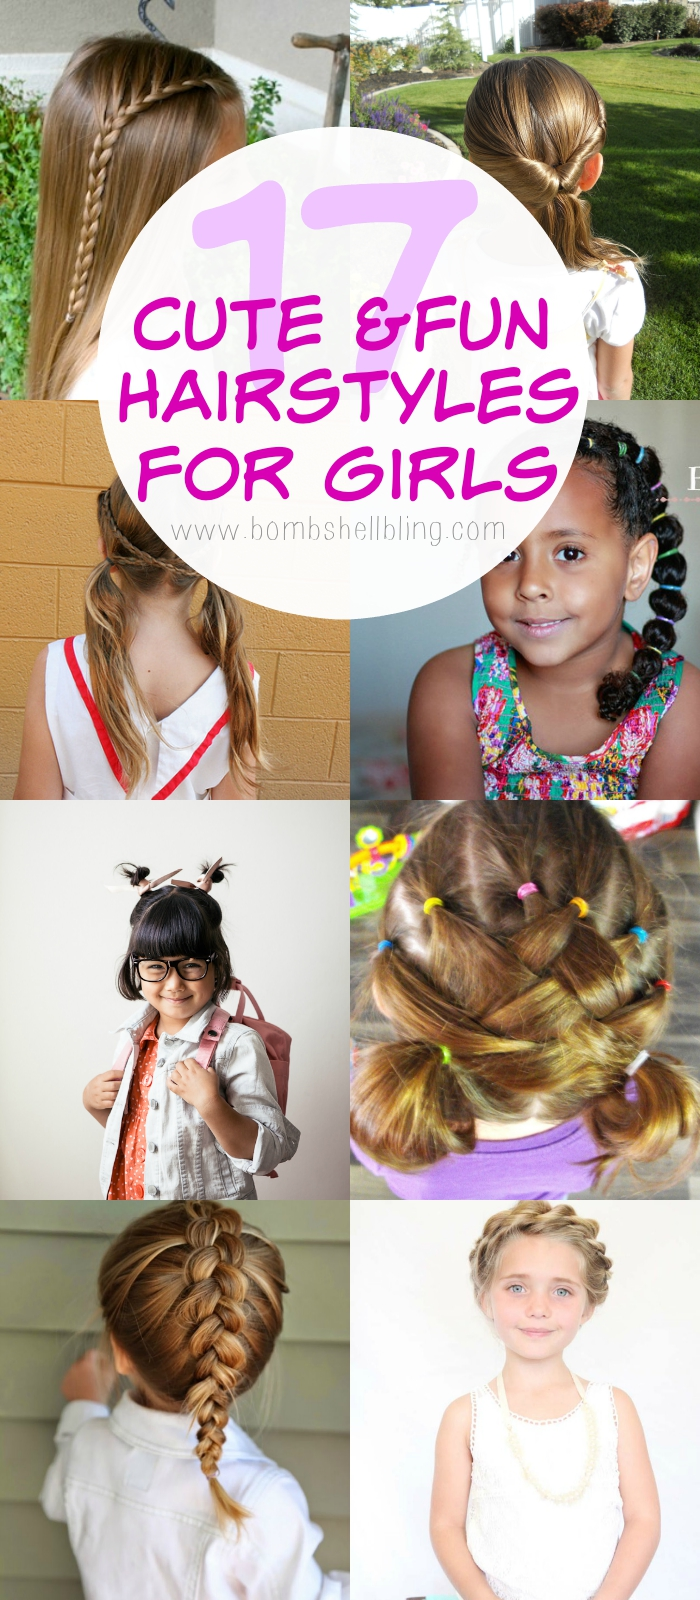 17 Cute & Fun Hairstyles for Girls